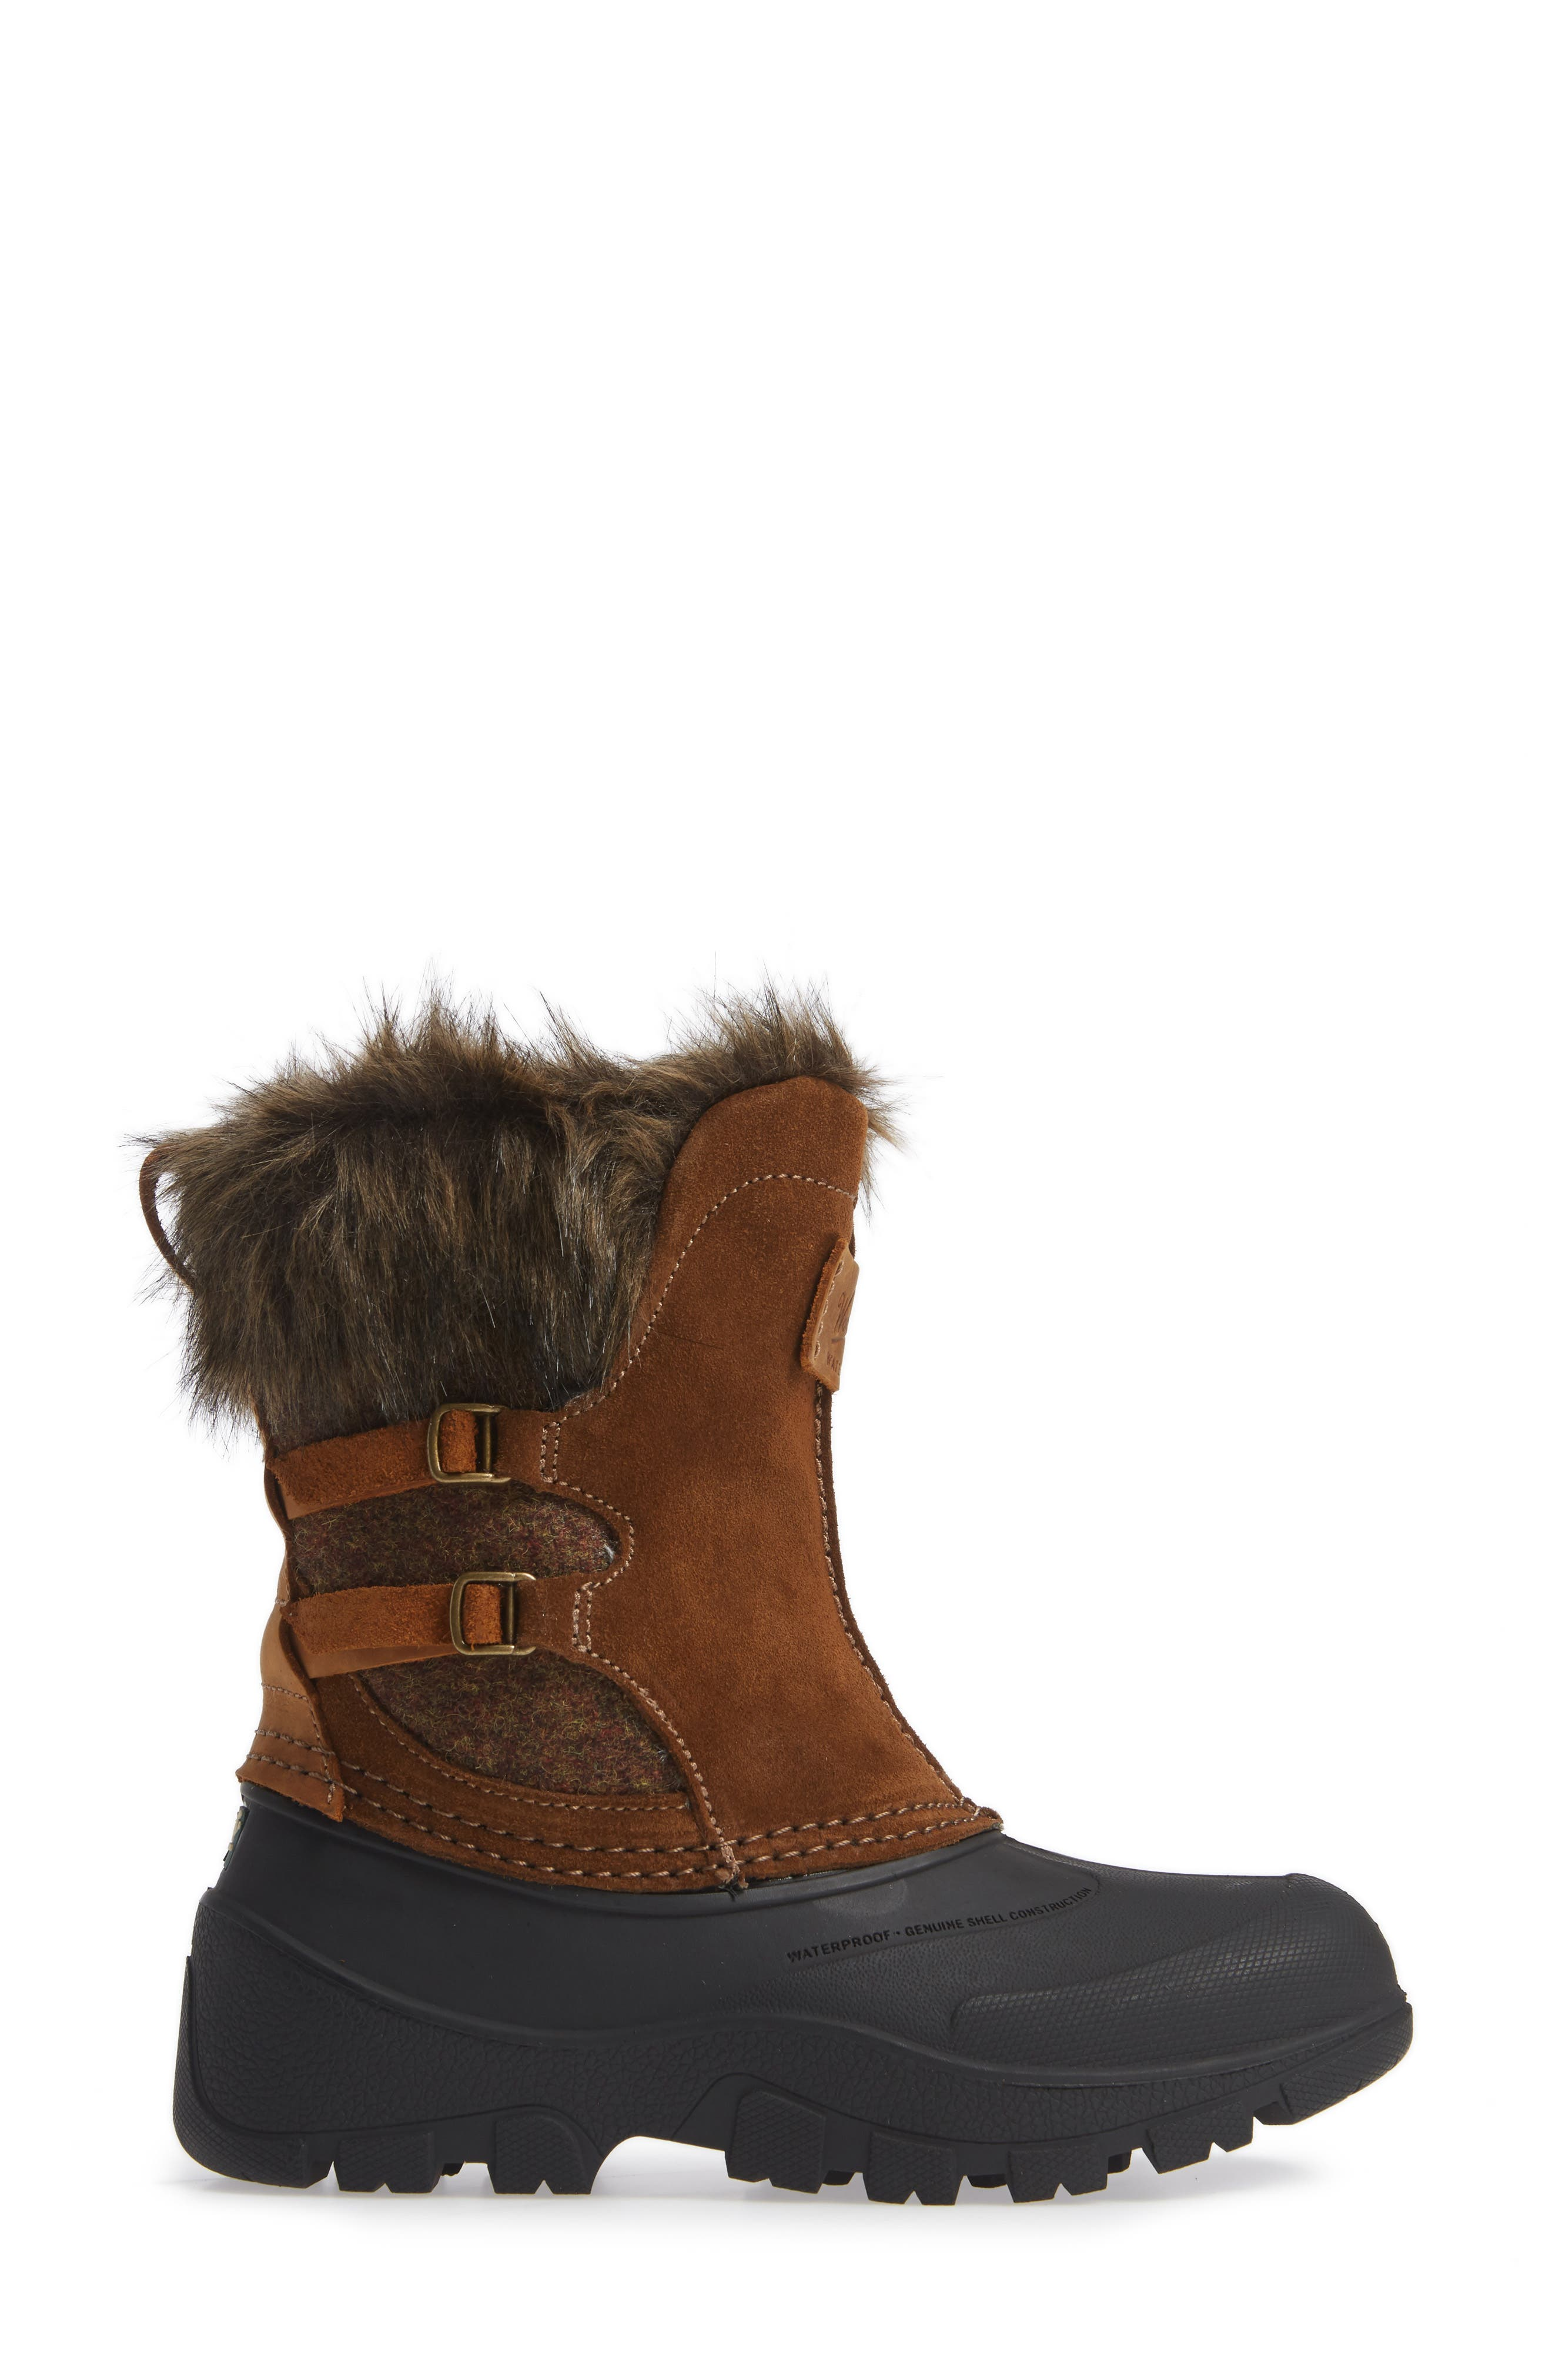 Icecat II Fully Woolly Waterproof Insulated Winter Boot,                             Alternate thumbnail 3, color,                             DACHSHUND WOOL